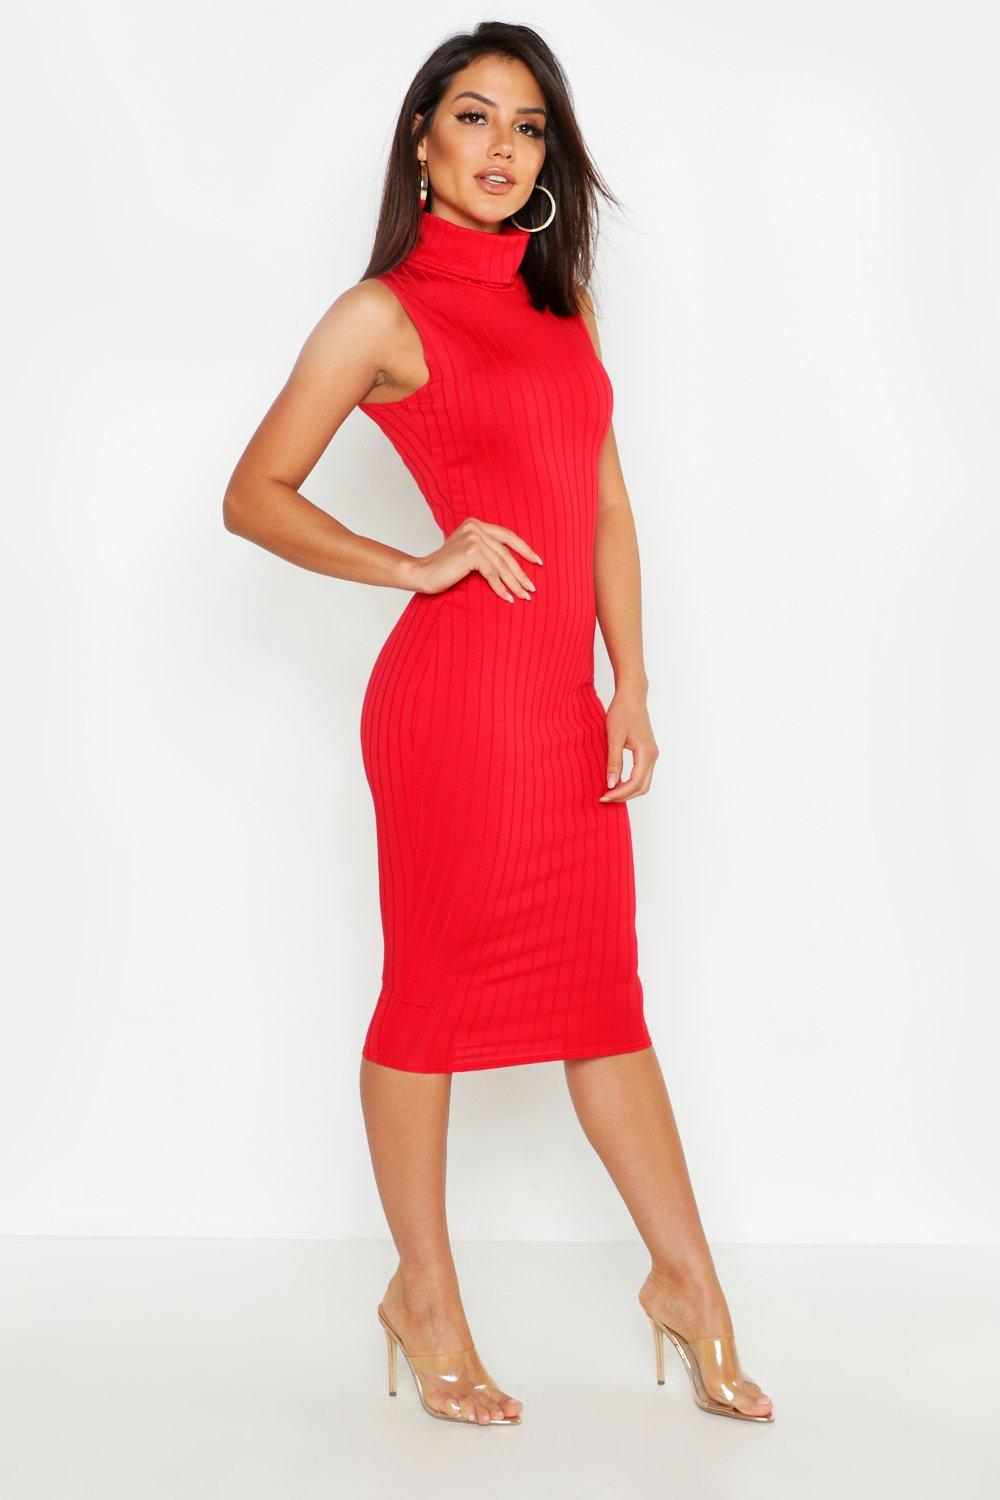 ca386d1886a9 Womens Red Ribbed High Neck Sleeveless Midi Dress. Hover to zoom